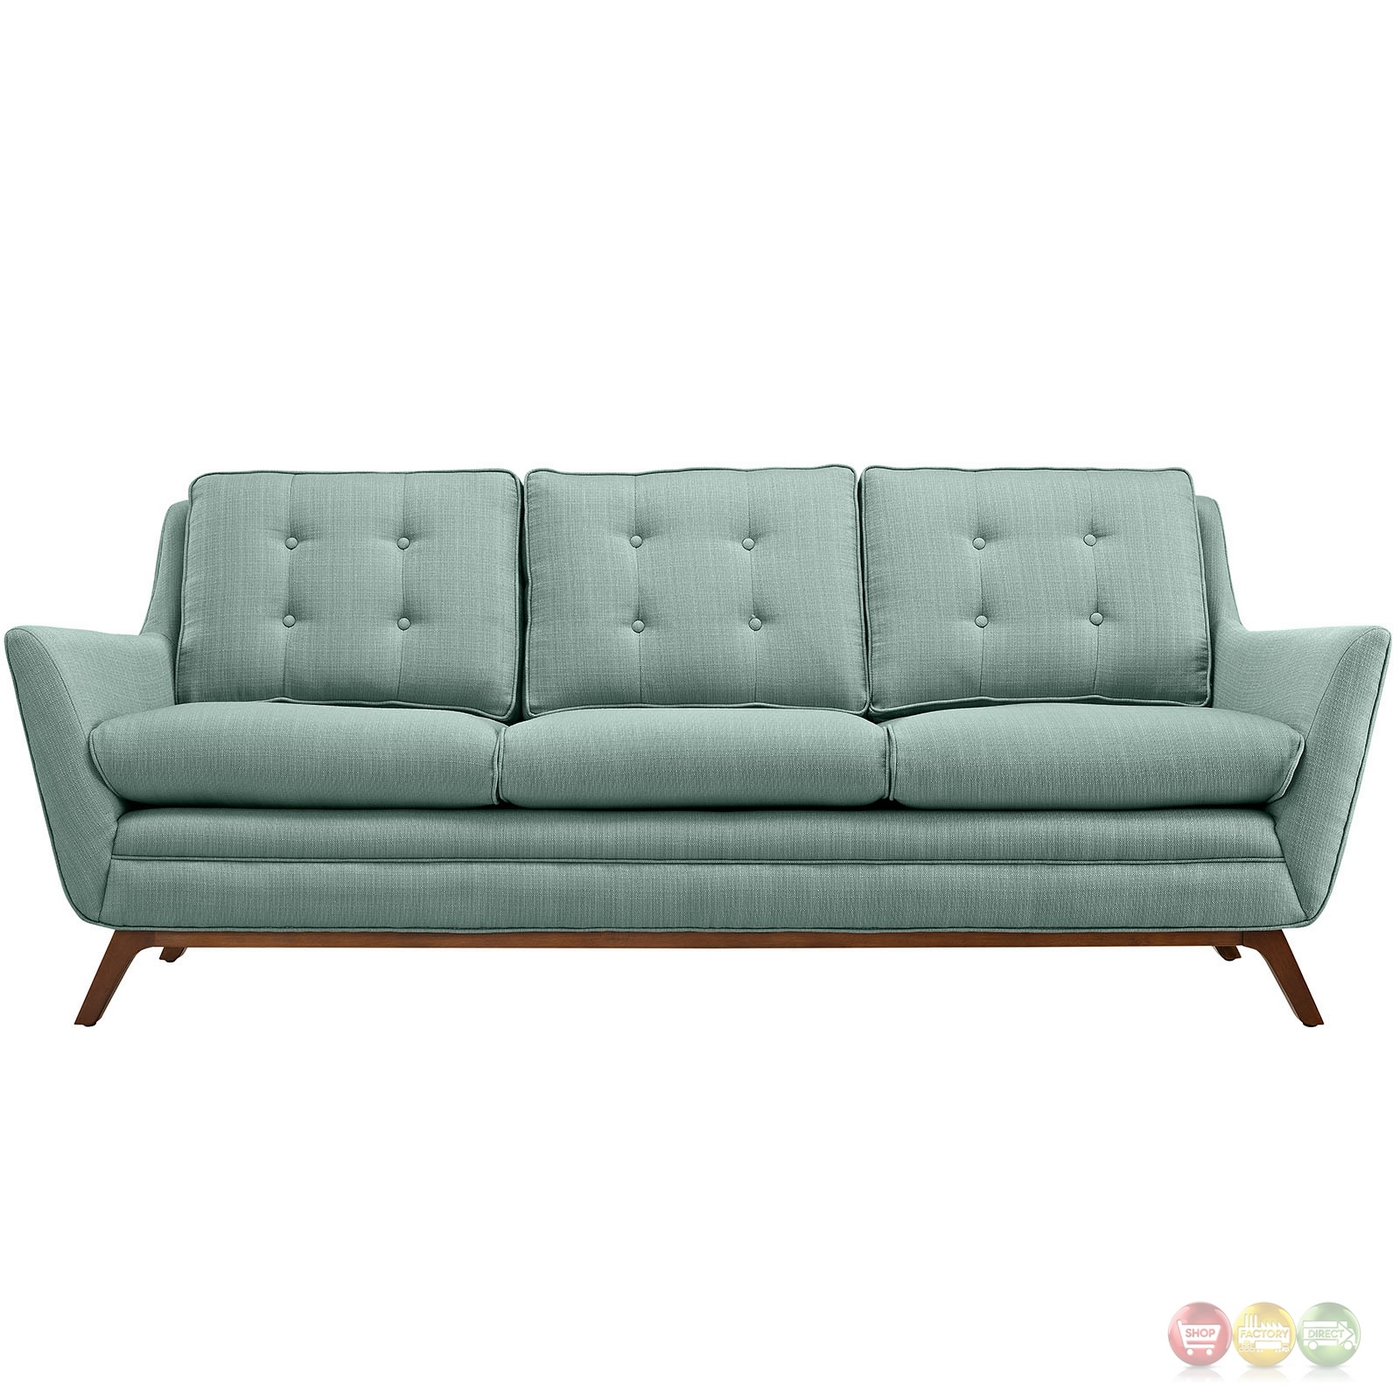 button tufted sofas round leather sofa uk beguile contemporary upholstered laguna